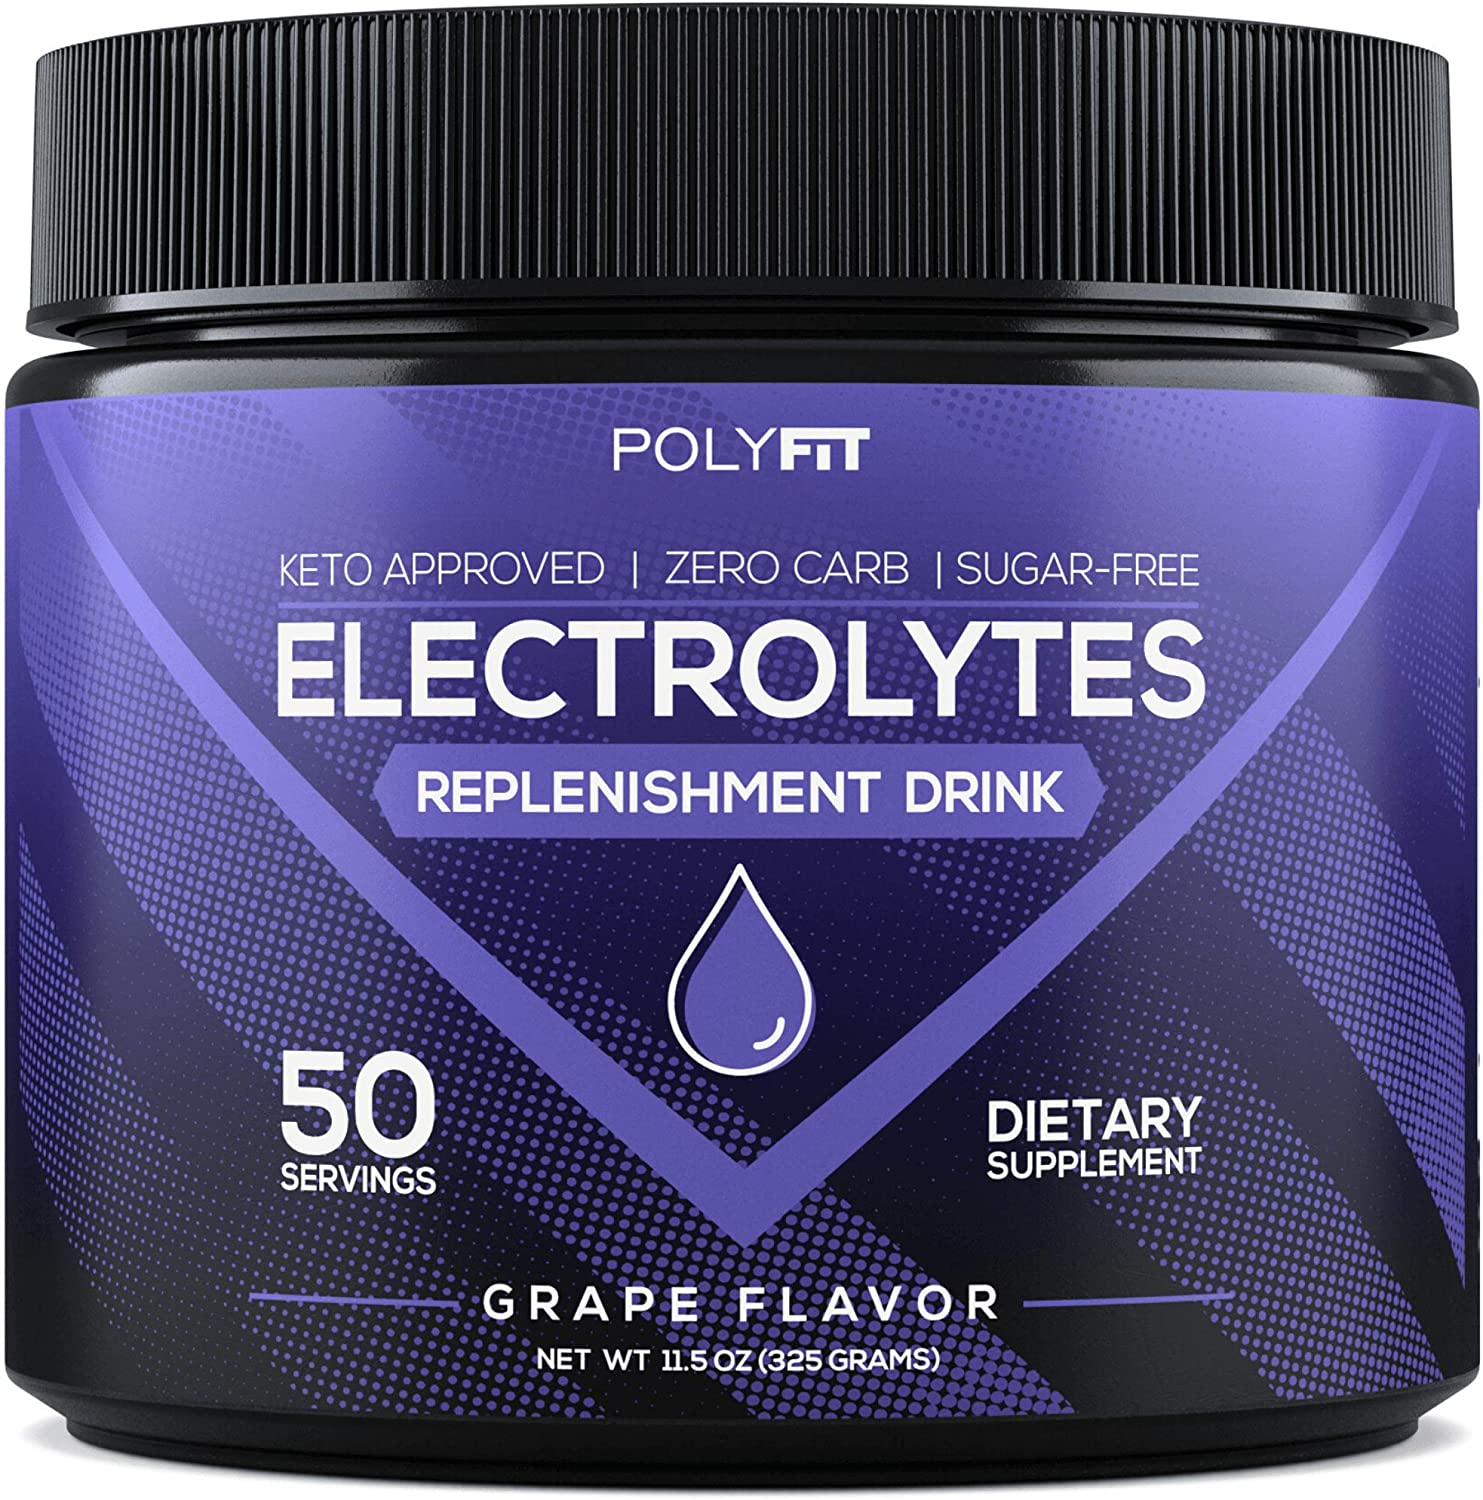 Electrolytes Powder | Sugar Free Electrolyte Replacement Supplement for Hydration | Keto Approved Electrolytes & Minerals Drink Mix | Grape Flavor: Health & Personal Care